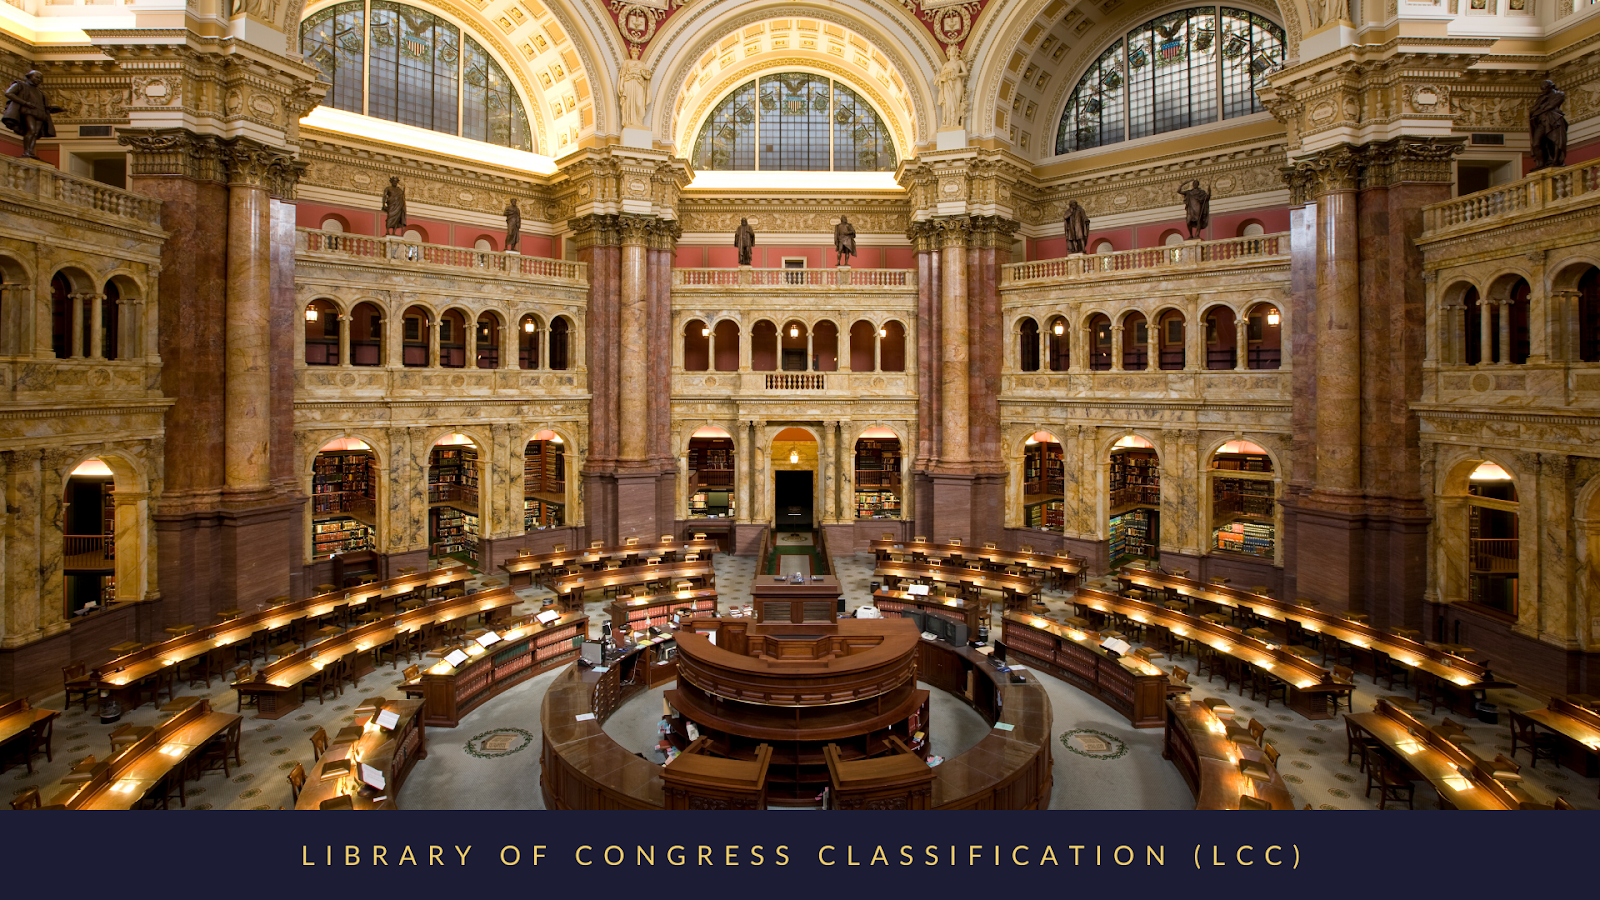 Library of Congress Classification (LCC)